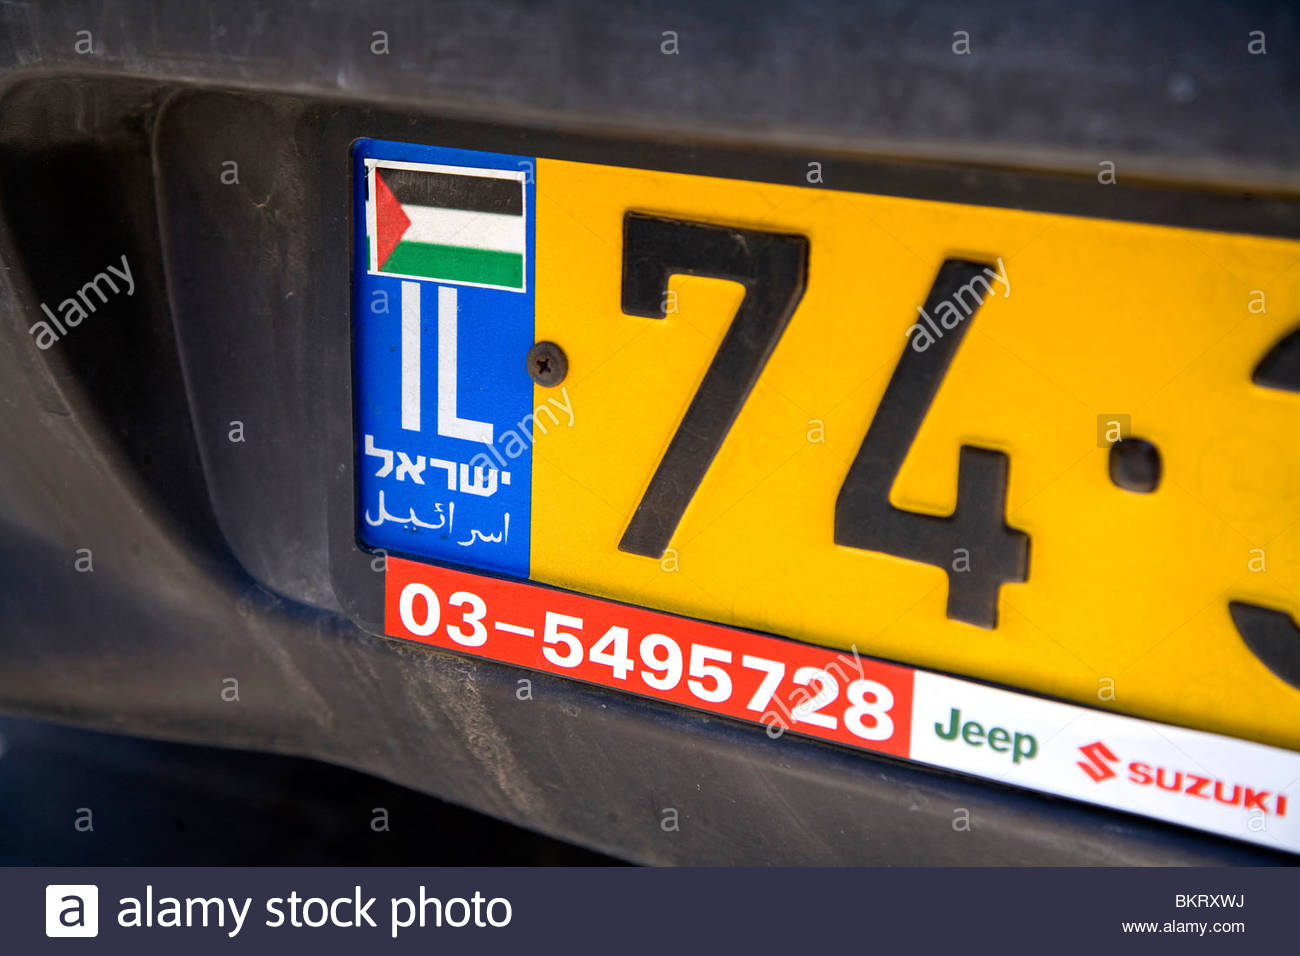 car plate,Tel Aviv,Israel,Middle East,Asia - Stock Image